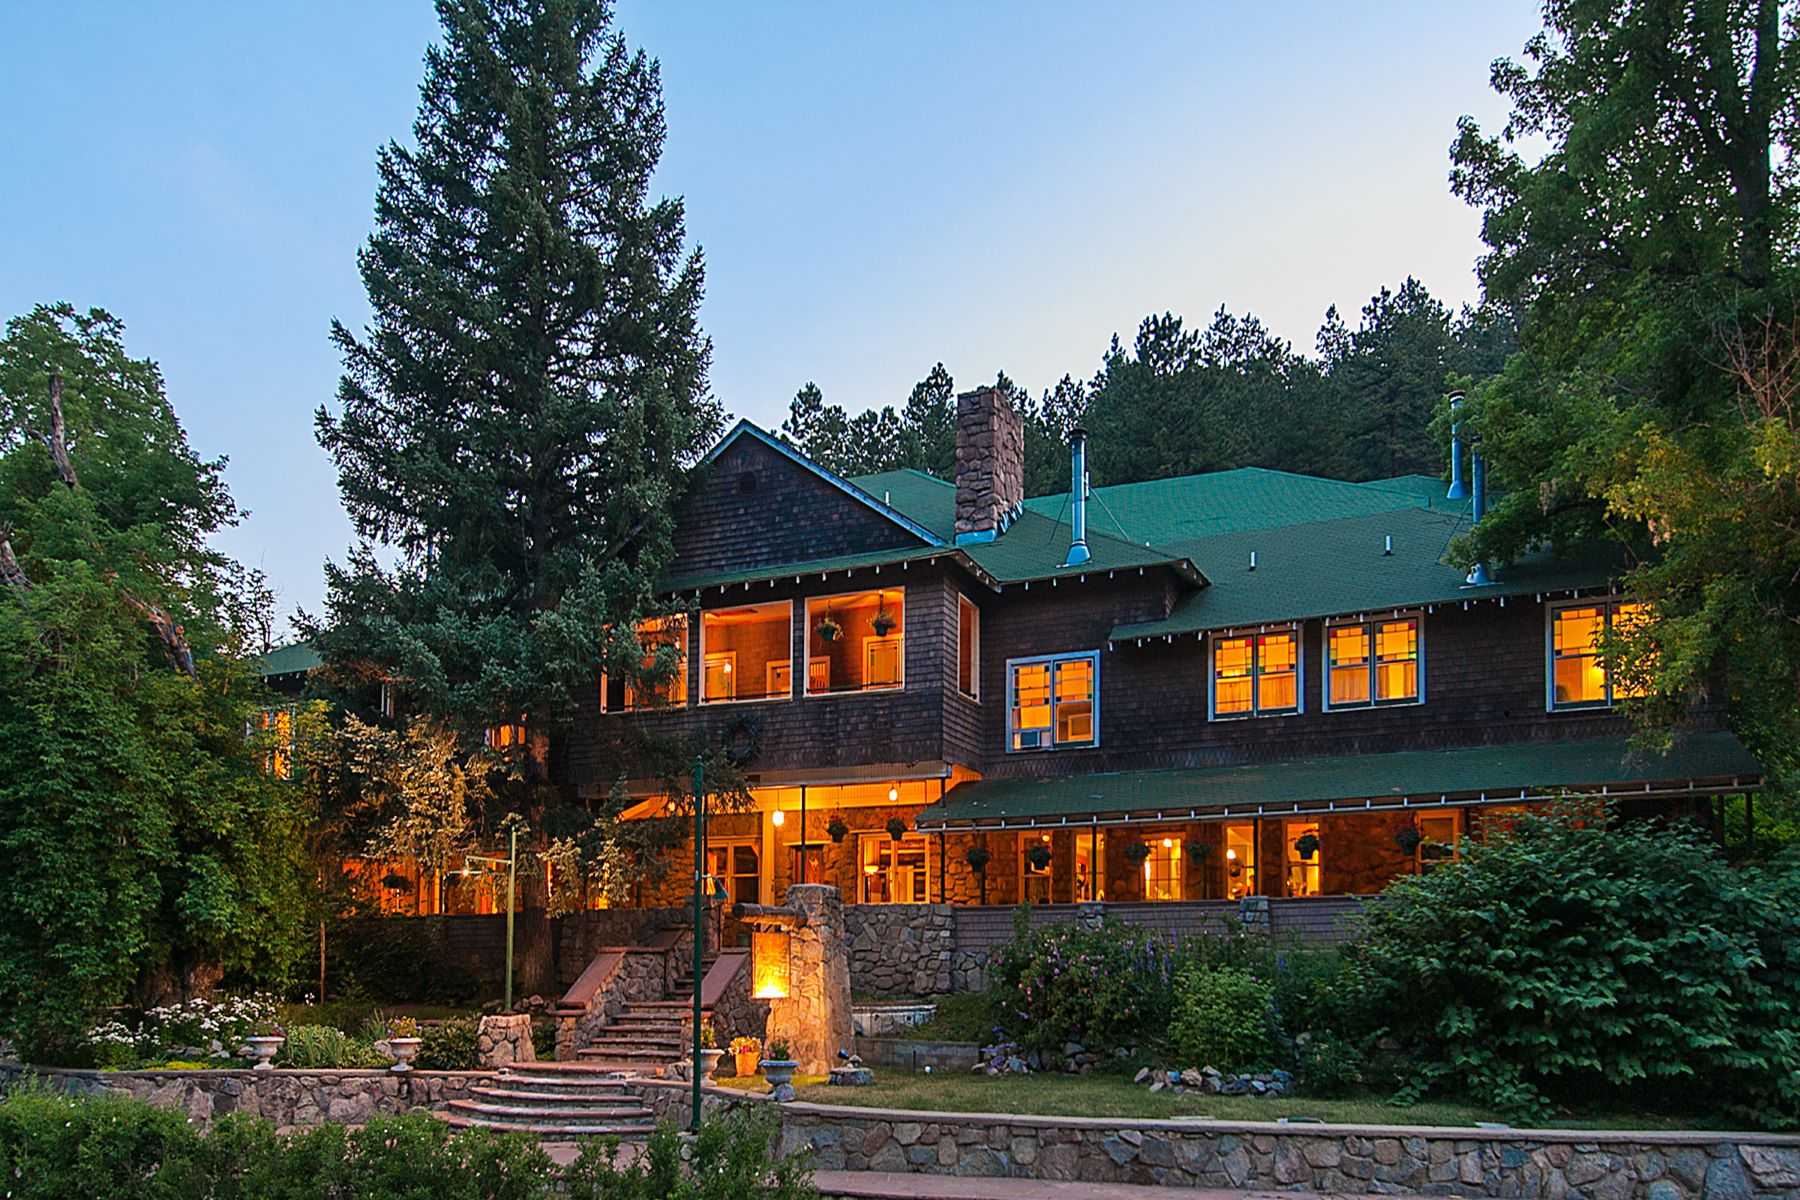 Single Family Home for Active at The Alps Inn 38619 Boulder Canyon Dr Boulder, Colorado 80302 United States